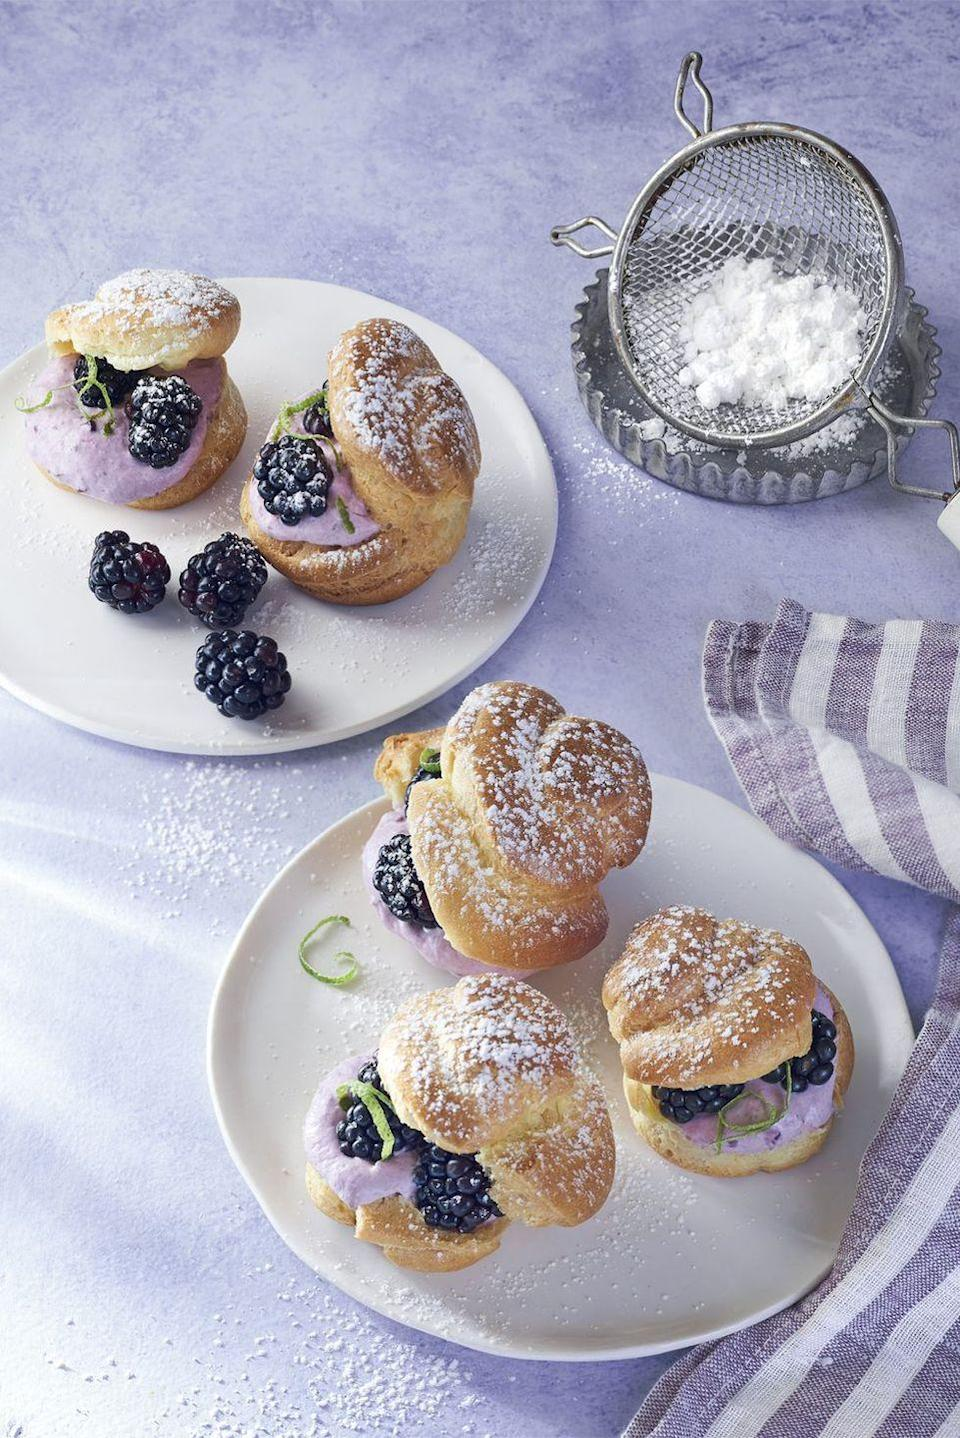 "<p>It's what's on the inside that really counts: These little puffs are stuffed with homemade cream and fresh berries. </p><p><em><a href=""https://www.countryliving.com/food-drinks/recipes/a41985/blackberry-lime-cream-puffs-recipe/"" rel=""nofollow noopener"" target=""_blank"" data-ylk=""slk:Get the recipe from Country Living »"" class=""link rapid-noclick-resp"">Get the recipe from Country Living »</a></em></p>"